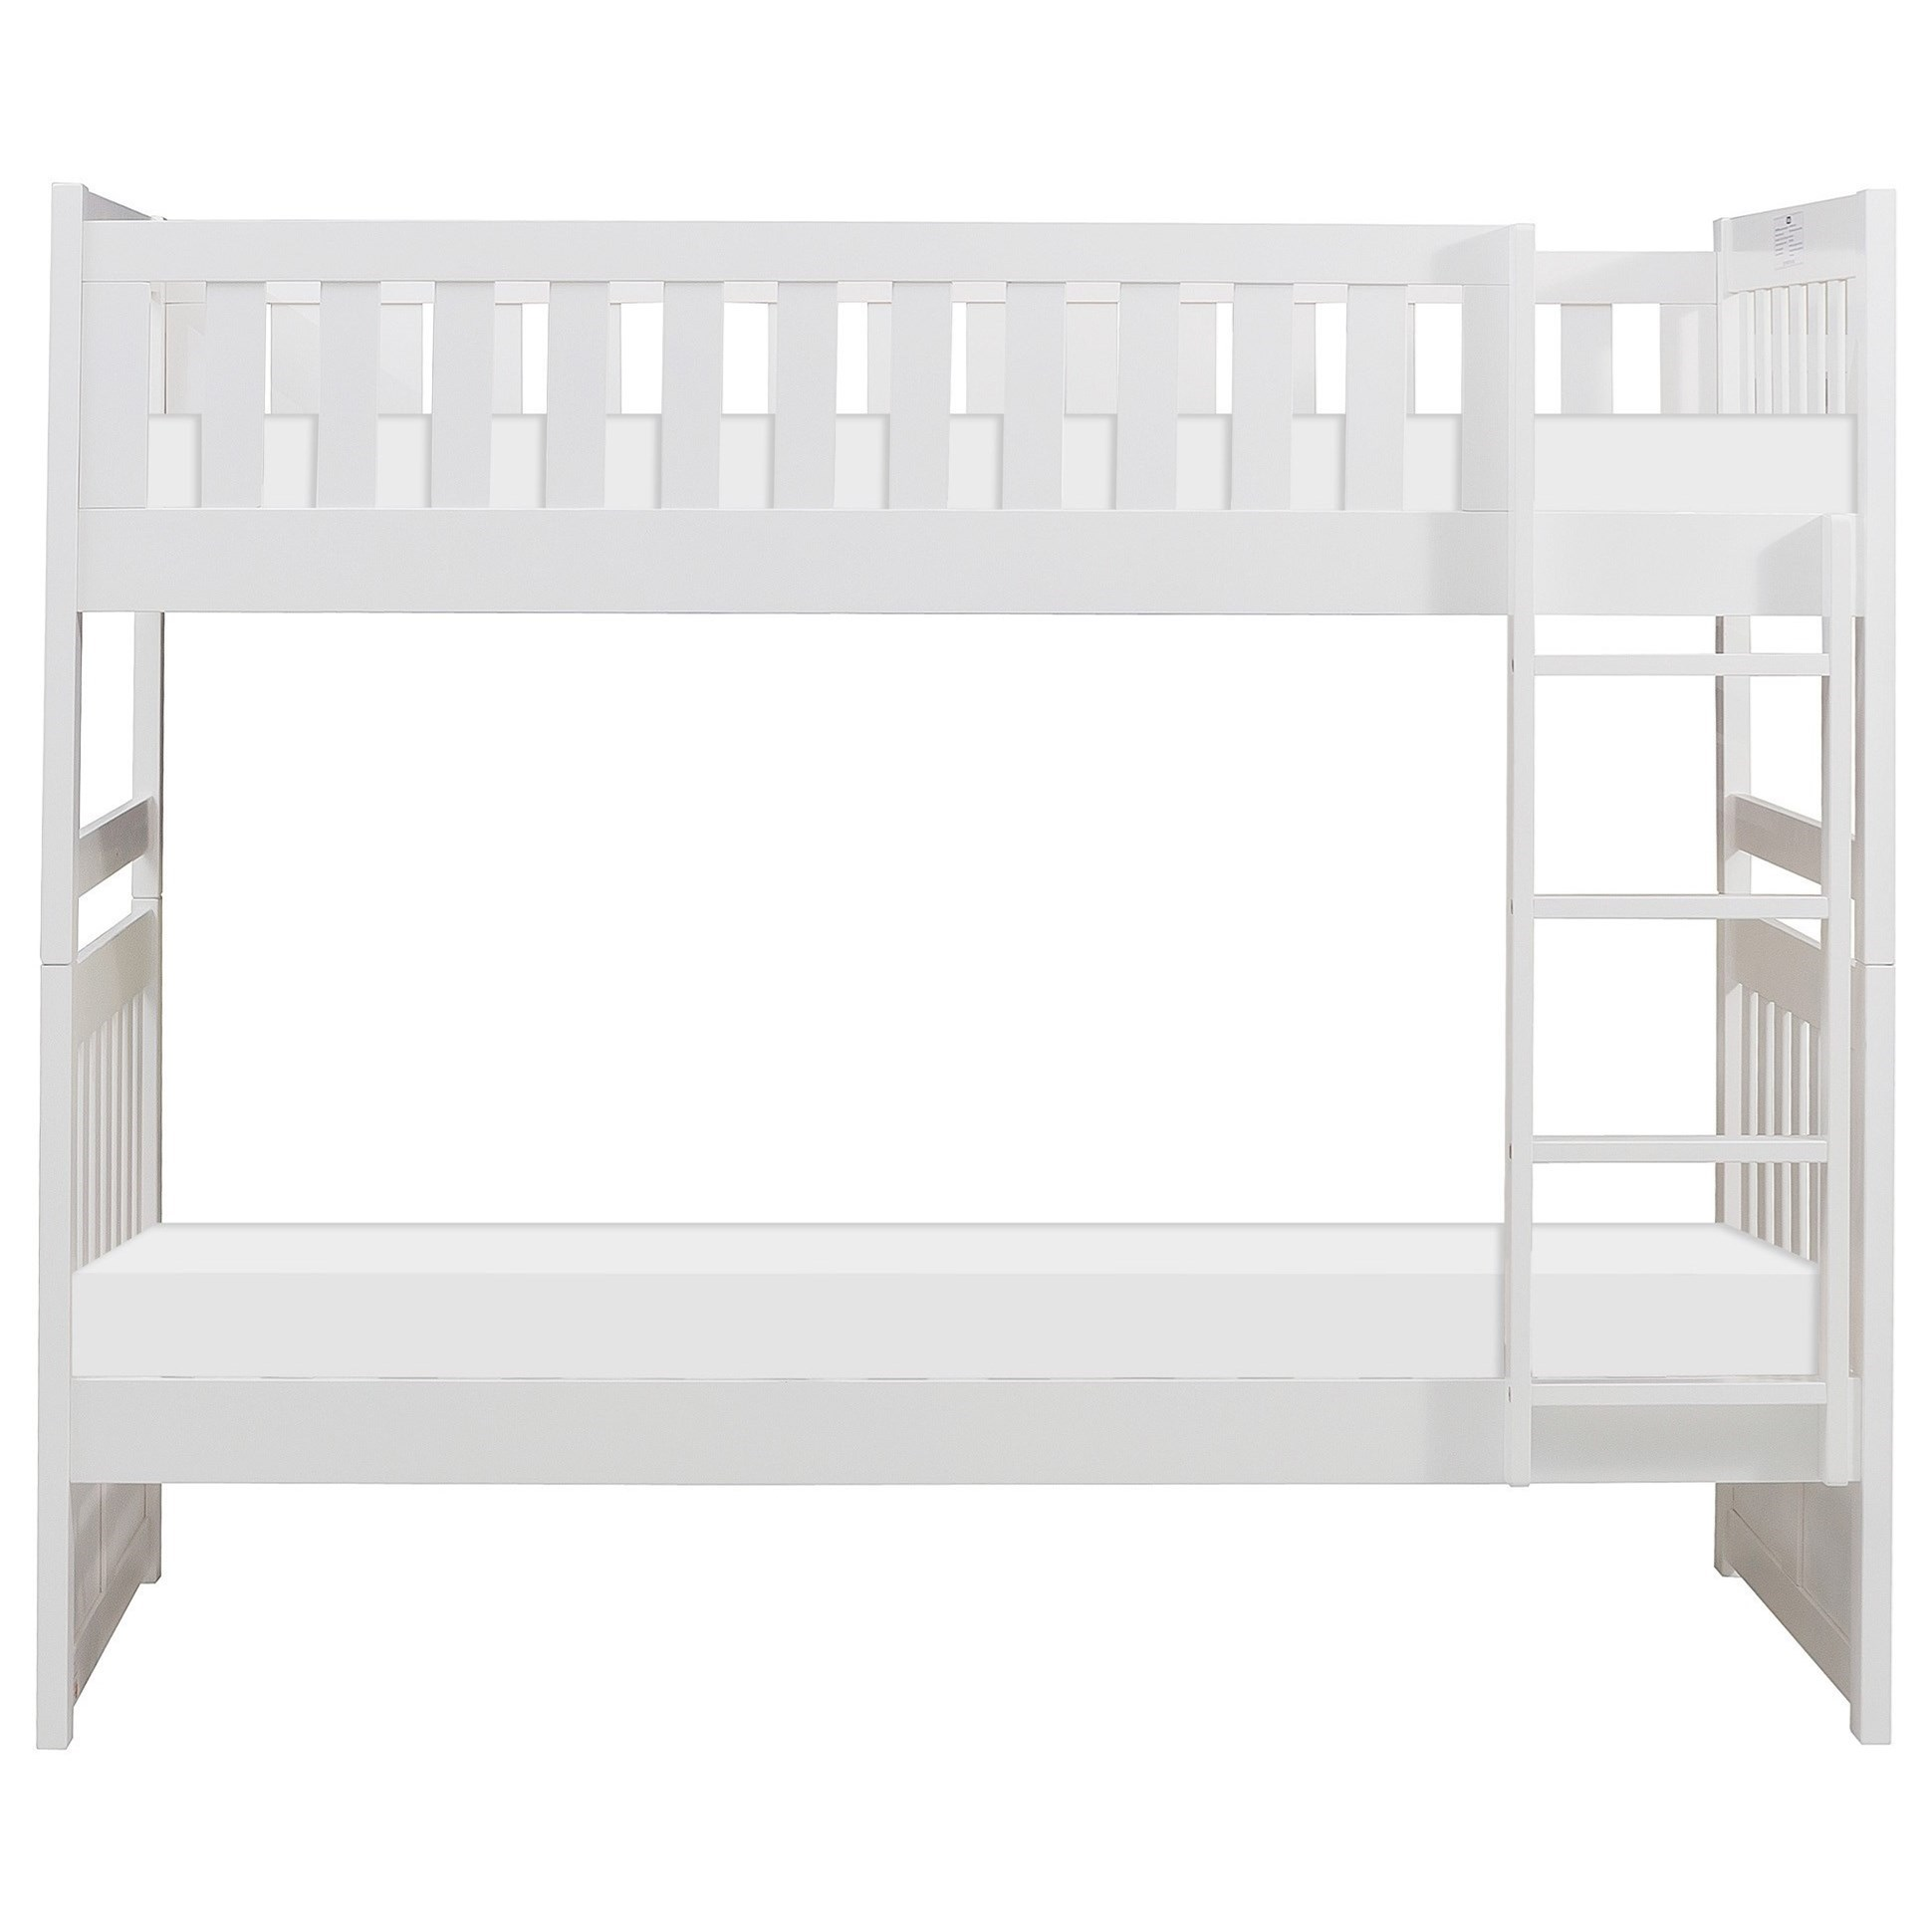 Value City Furniture Bunk Beds Off 66 Online Shopping Site For Fashion Lifestyle